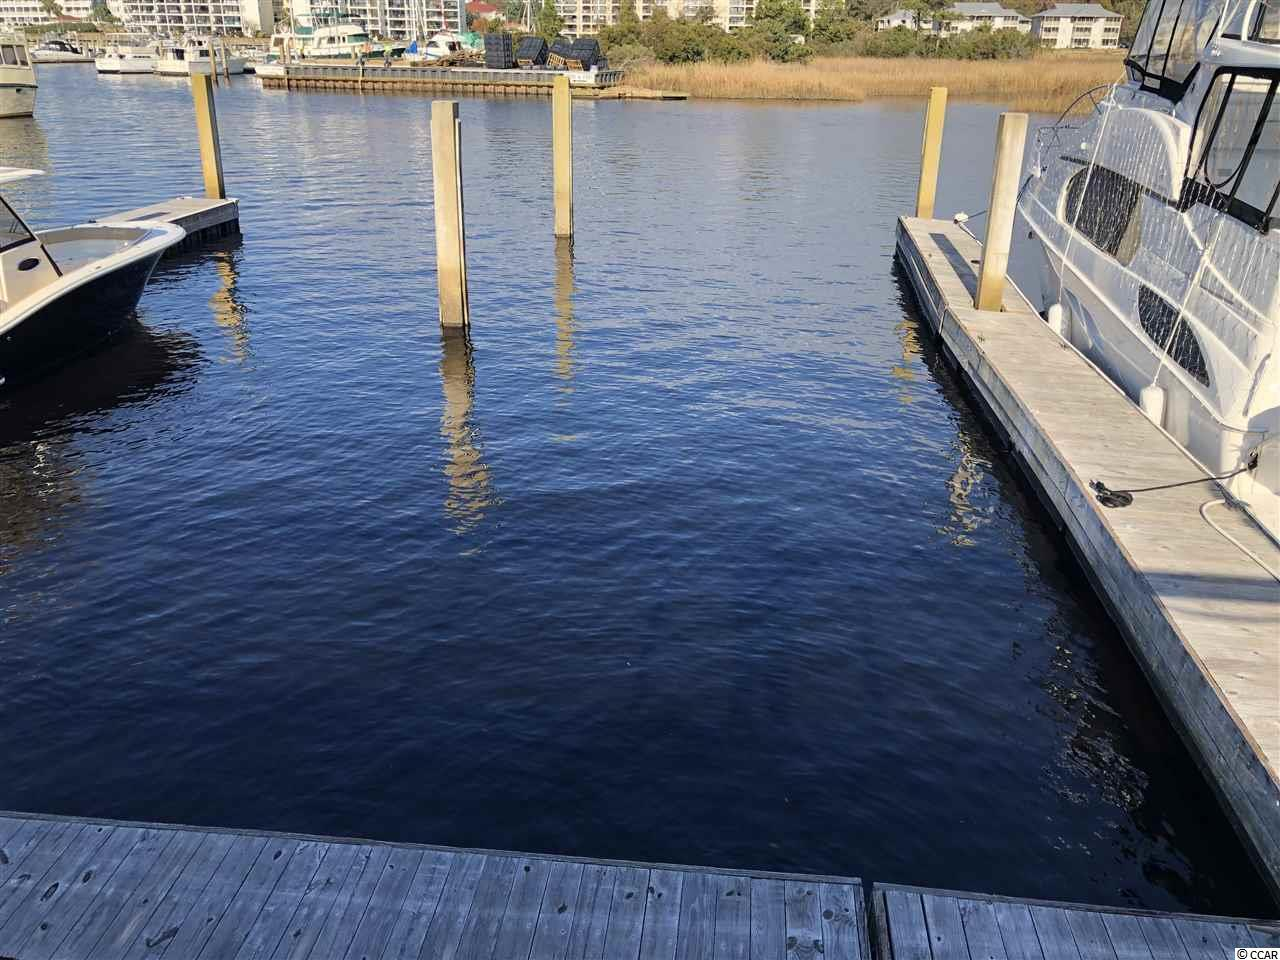 If you are looking for a boat slip come check this one out. Great location and easy access to the waterway!  Call us for details.